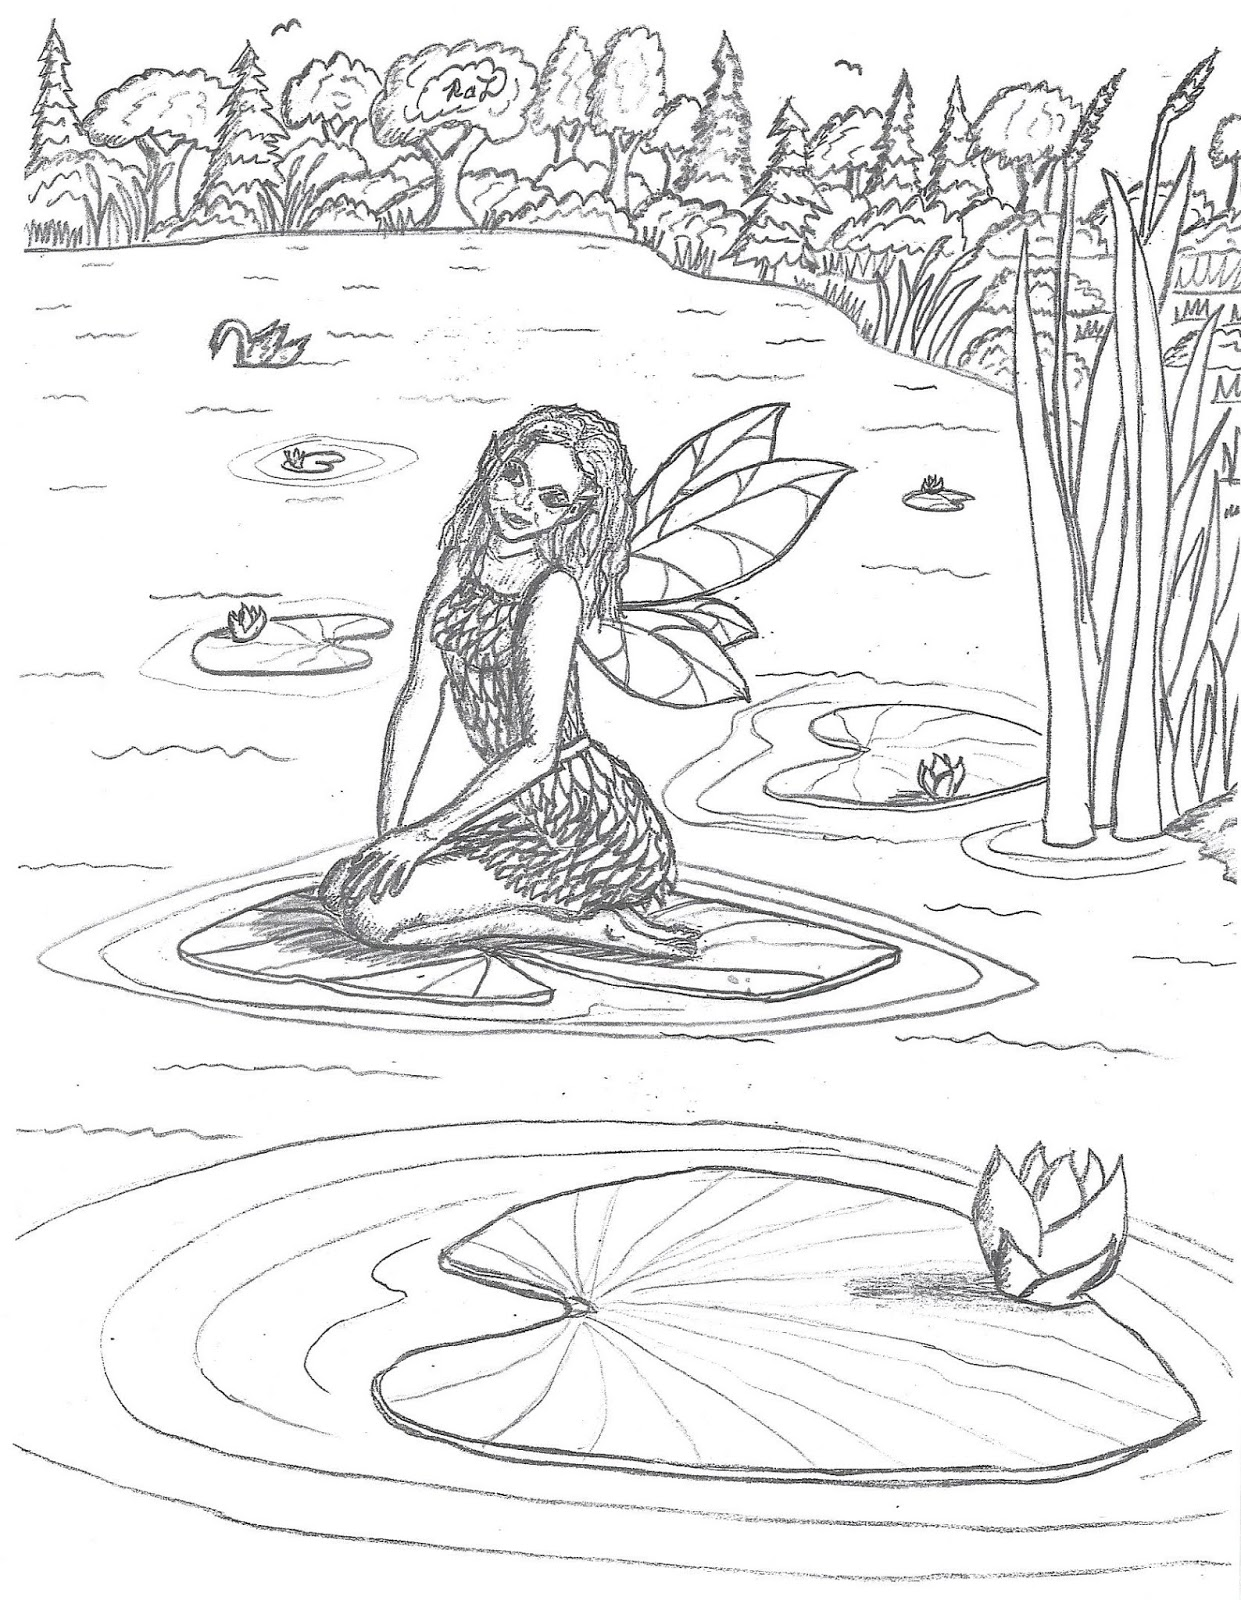 Robin S Great Coloring Pages Water Fairies Coloring Pages